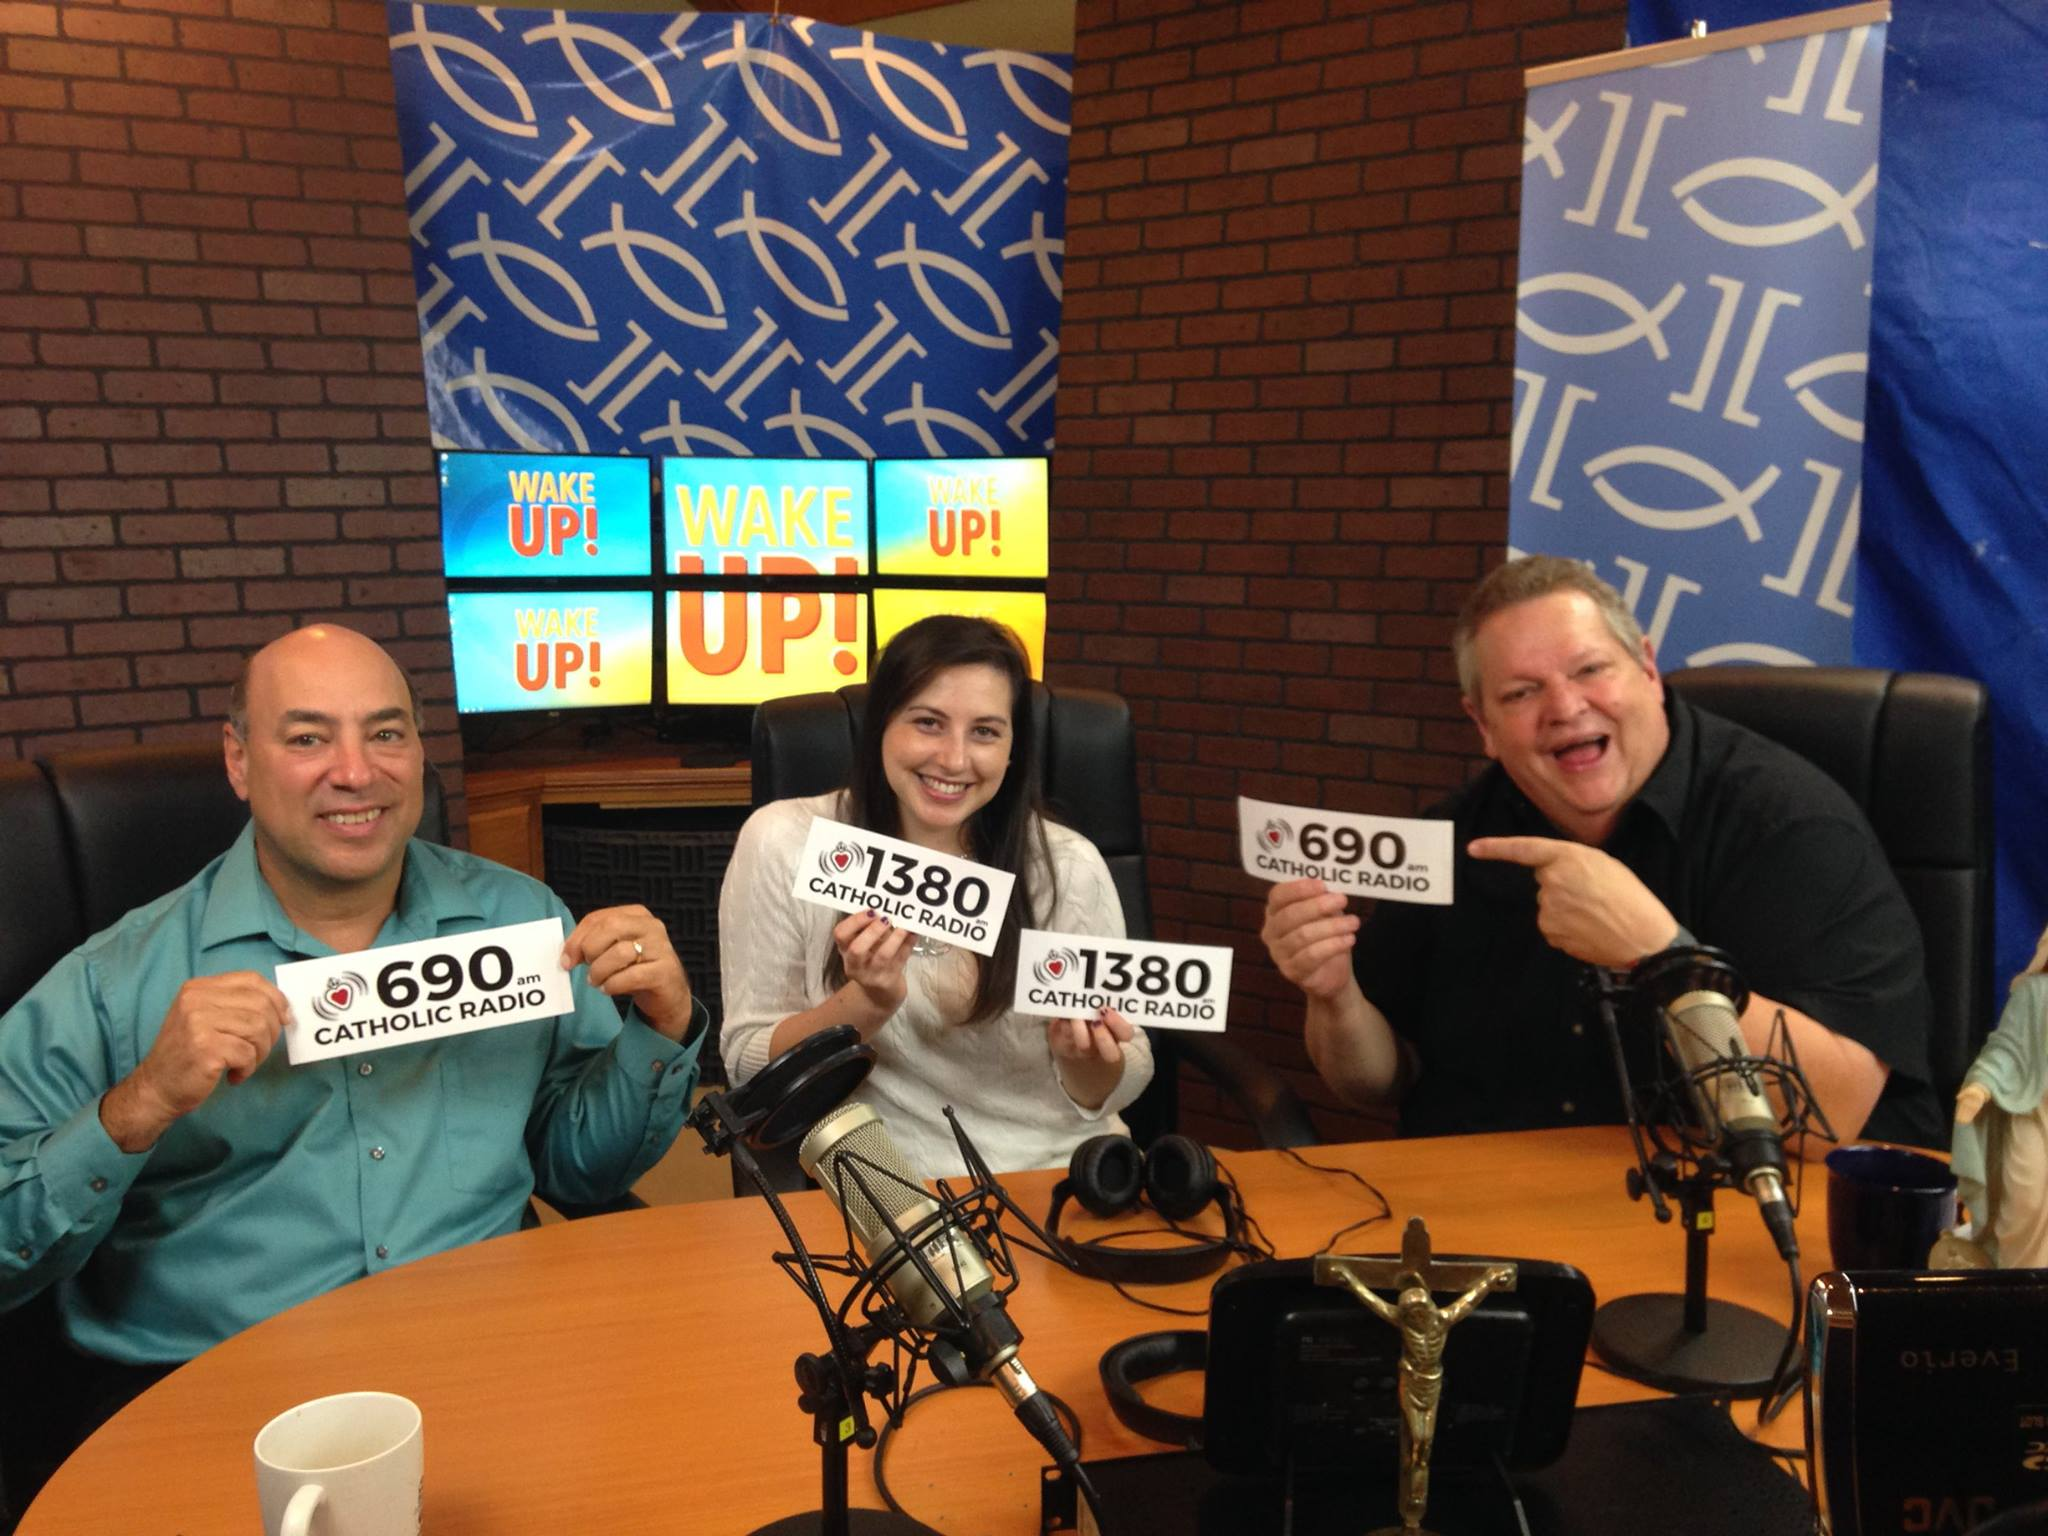 Johnny, Gaby, and Jeff are always ready to remind you where your radio dial should point!